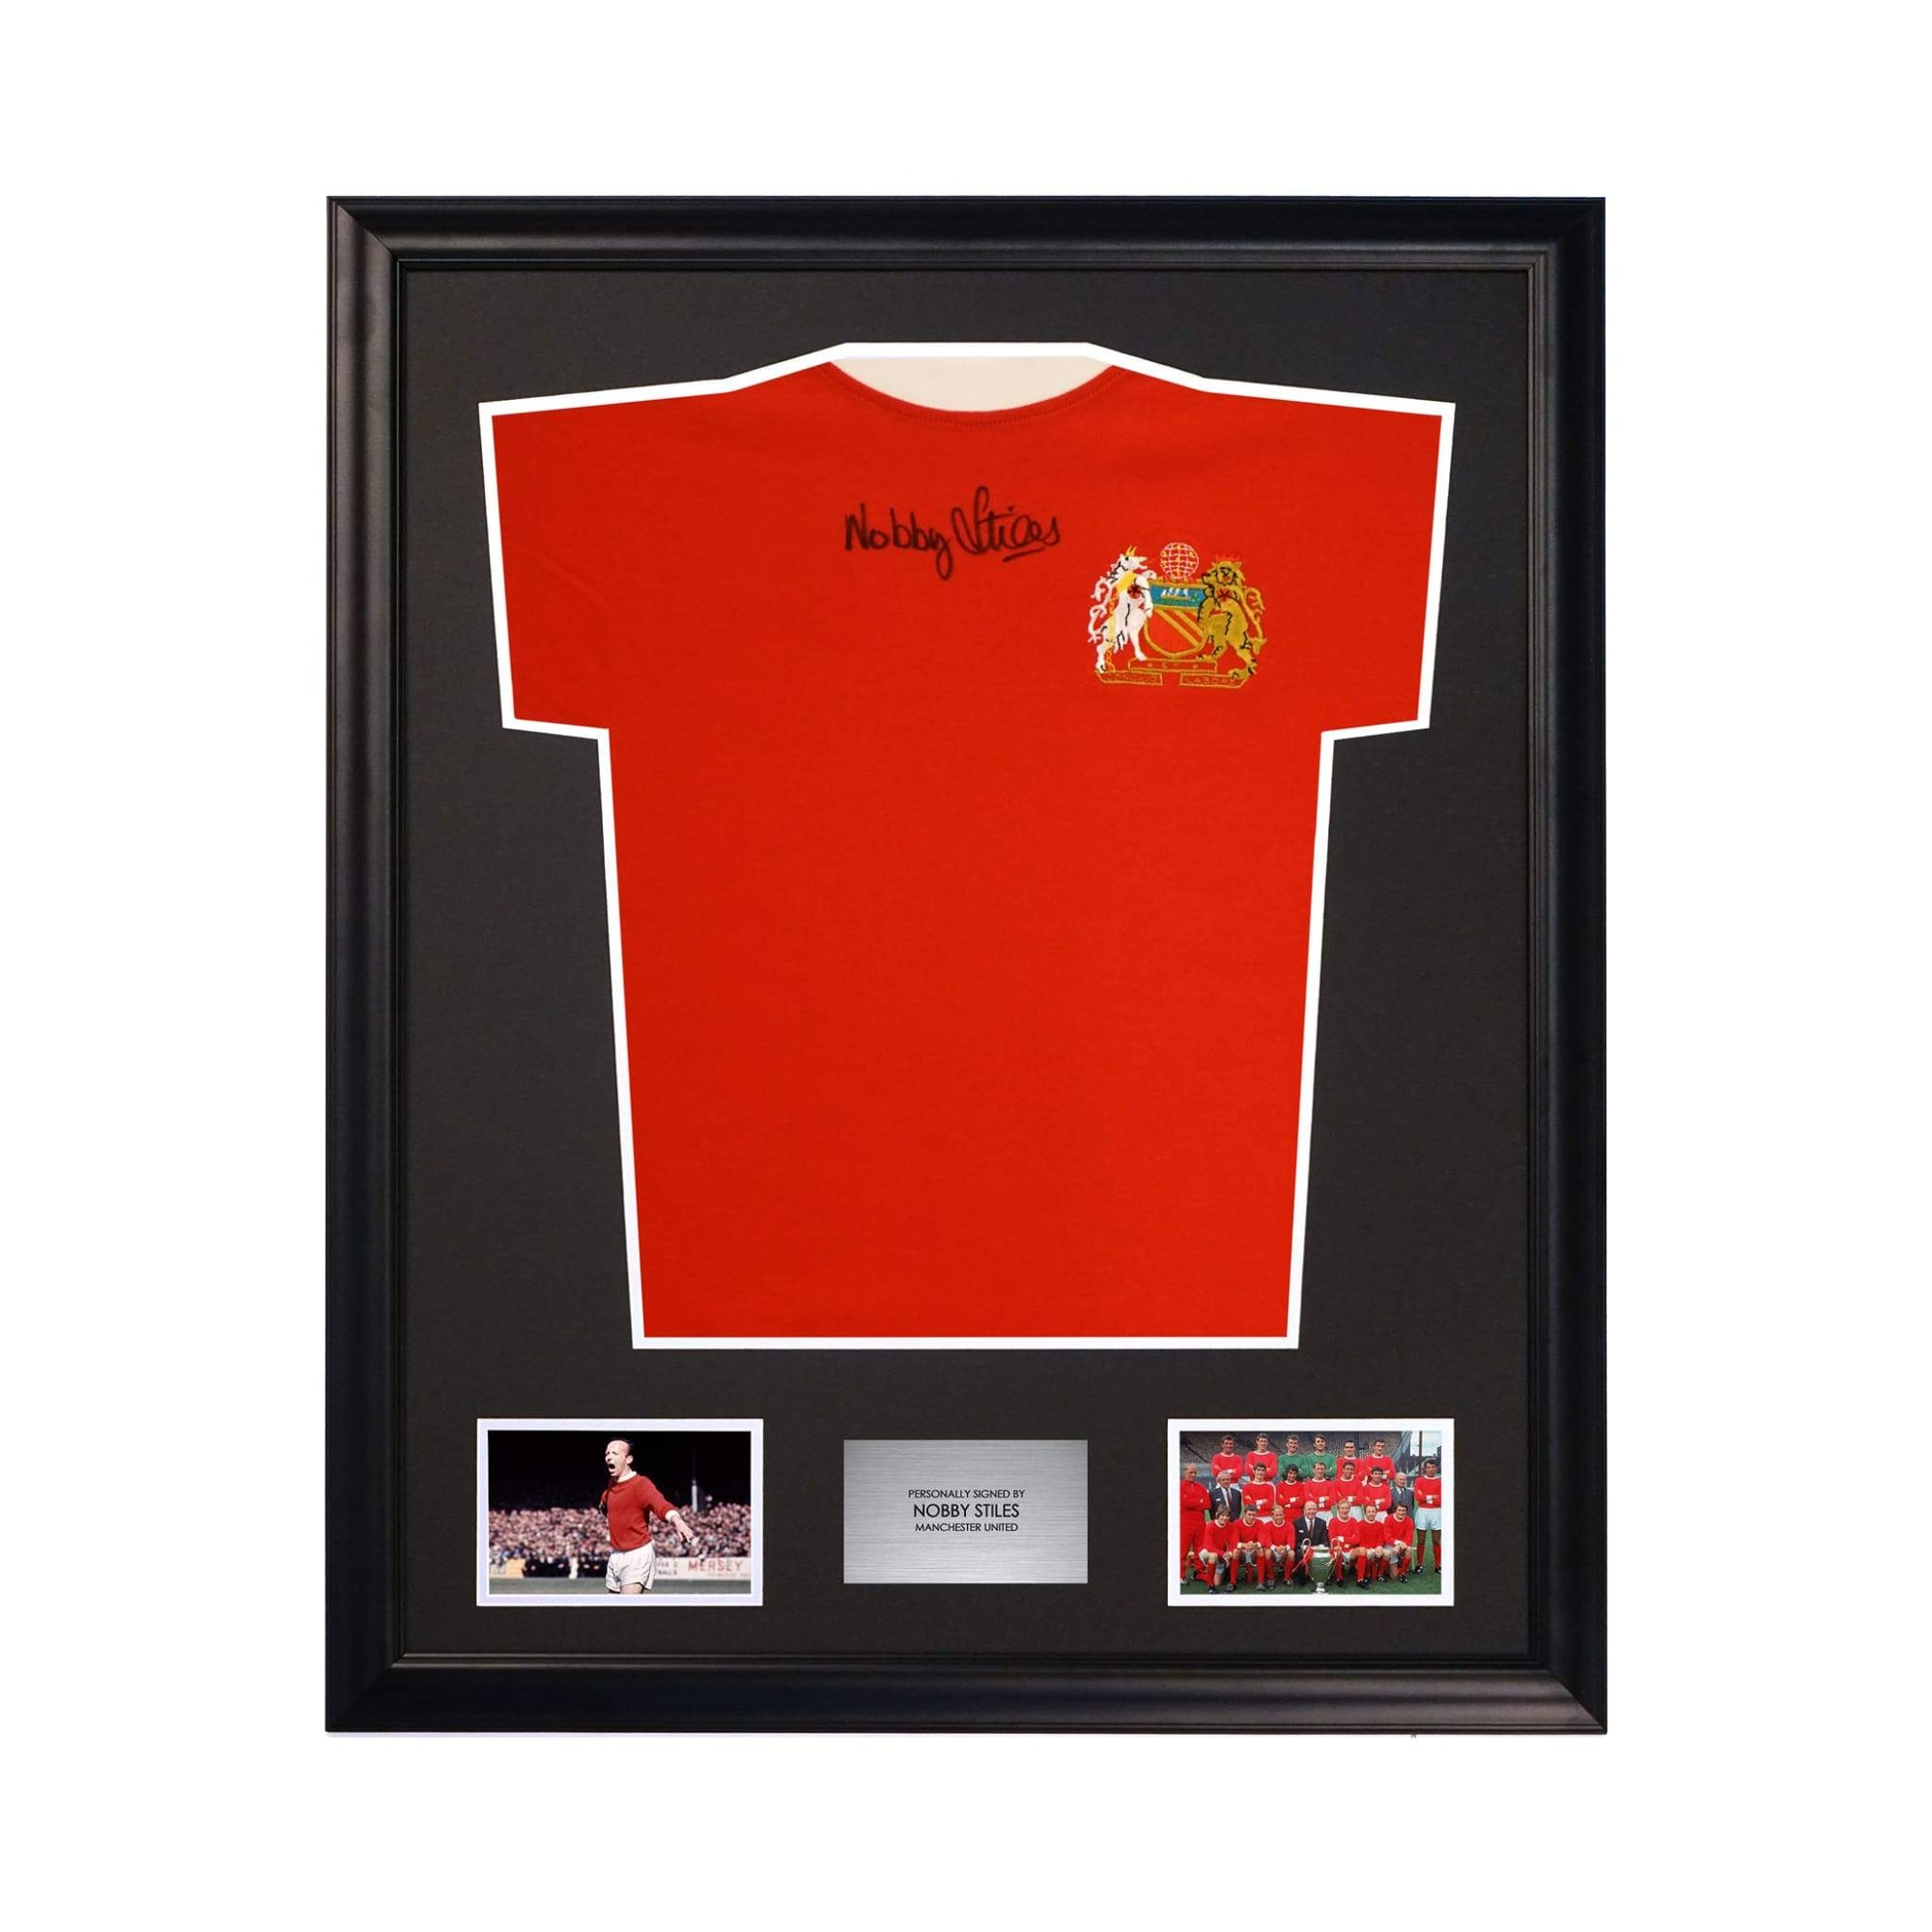 Manchester United Nobby Stiles Signed Memorabilia Jersey